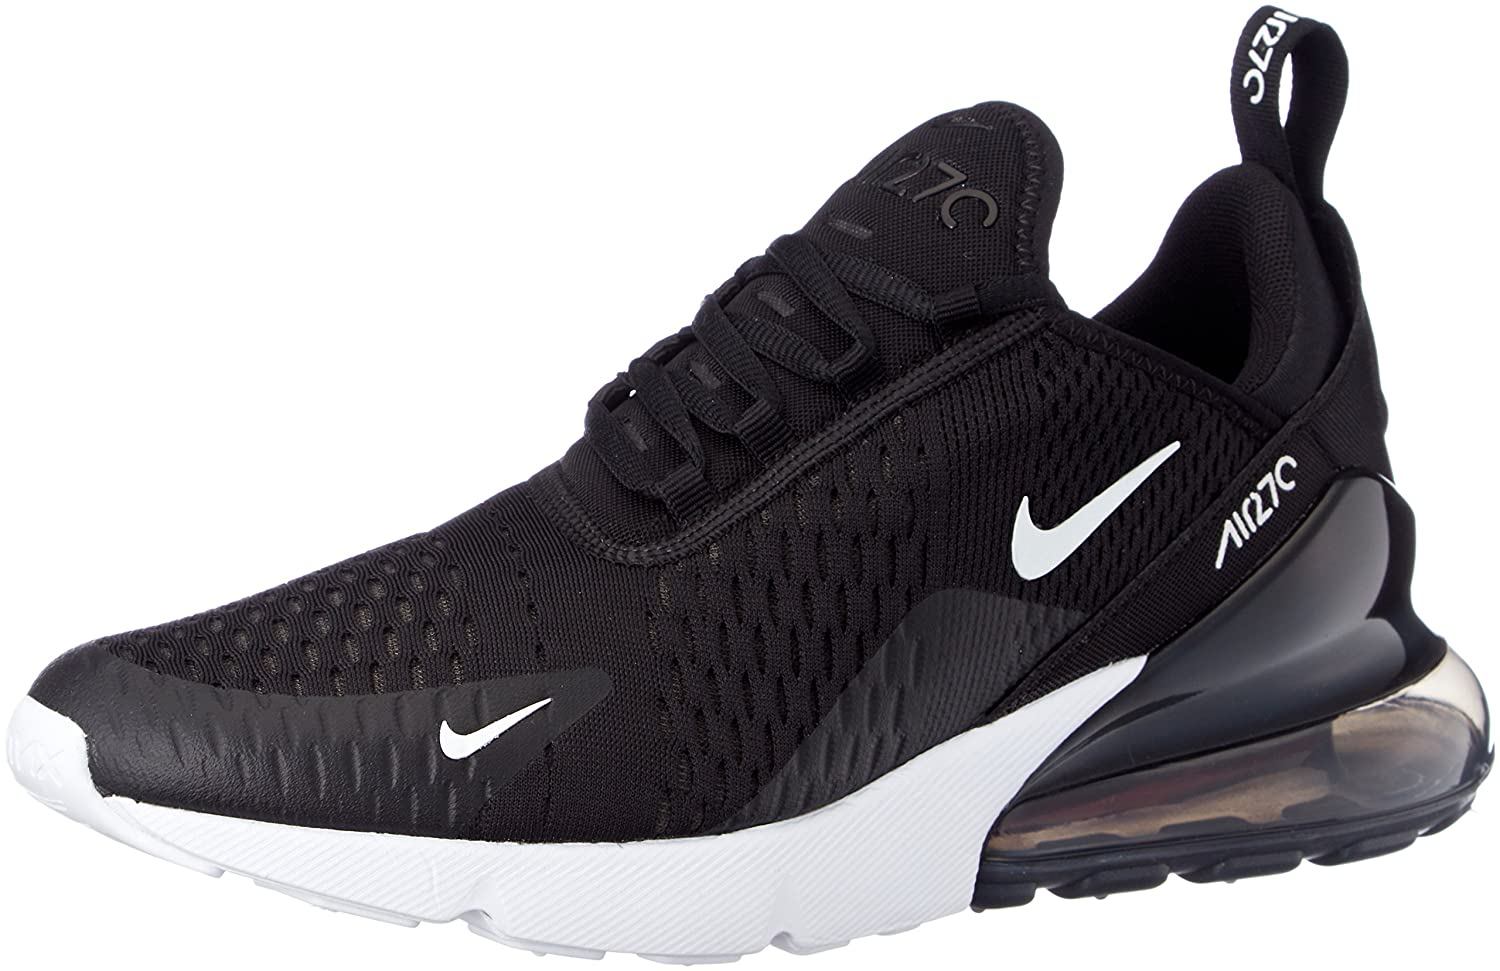 promo code ba9d9 47ff6 Nike Men's Air Max 270 Gymnastics Shoes